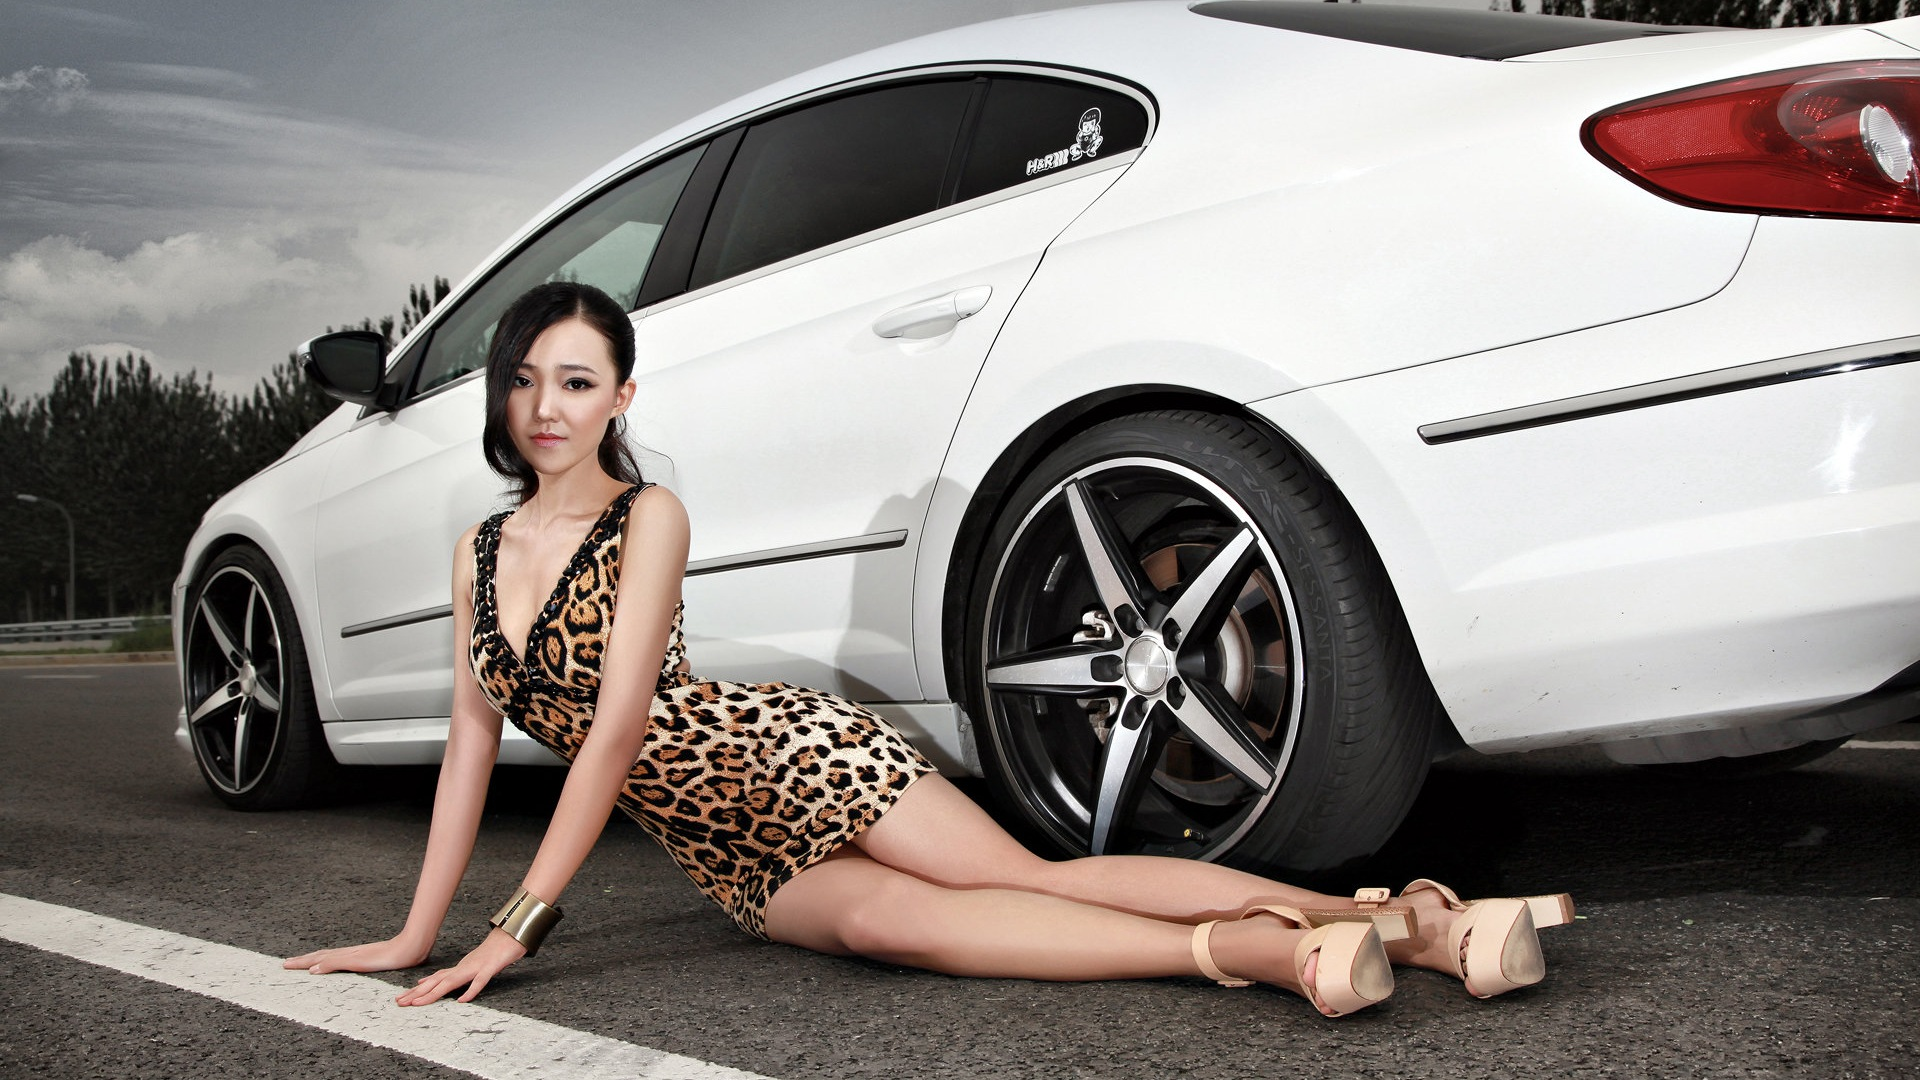 cool-asian-car-pictures-scene-chick-pussy